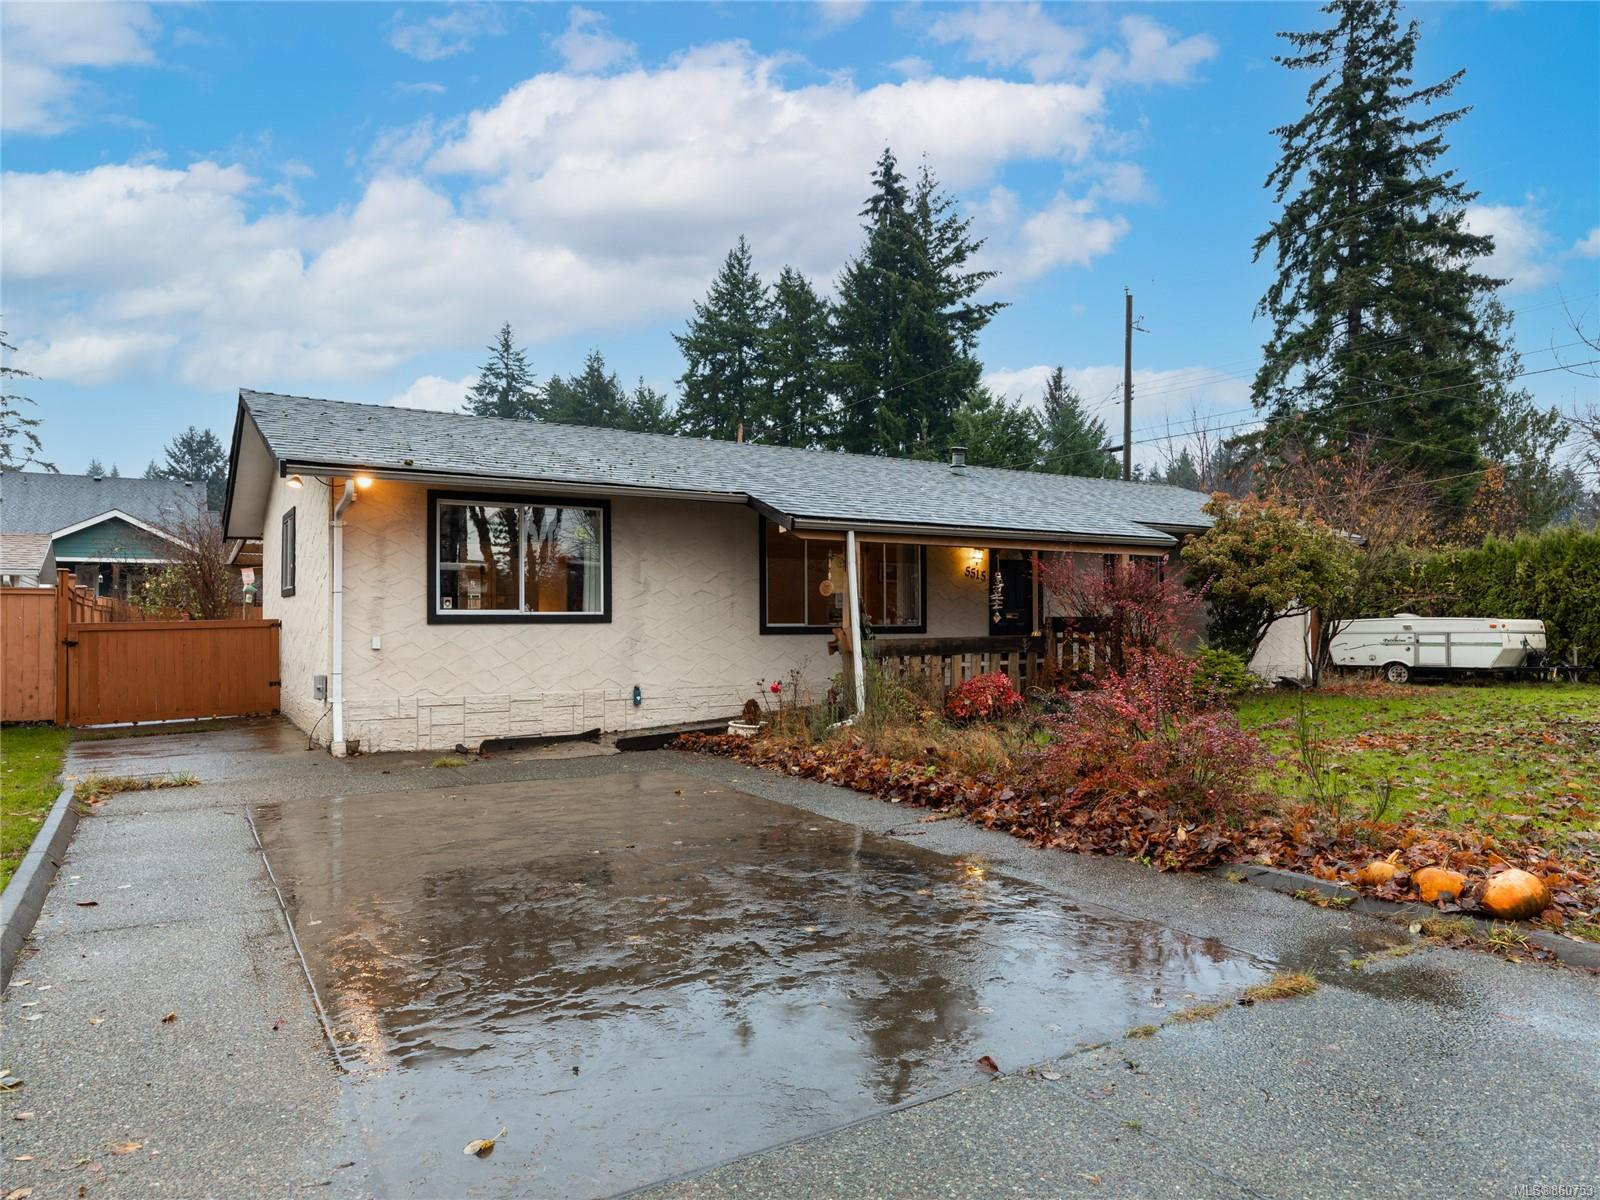 Removed: 5515 Meadow Drive, Port Alberni, BC - Removed on 2020-11-28 00:03:58